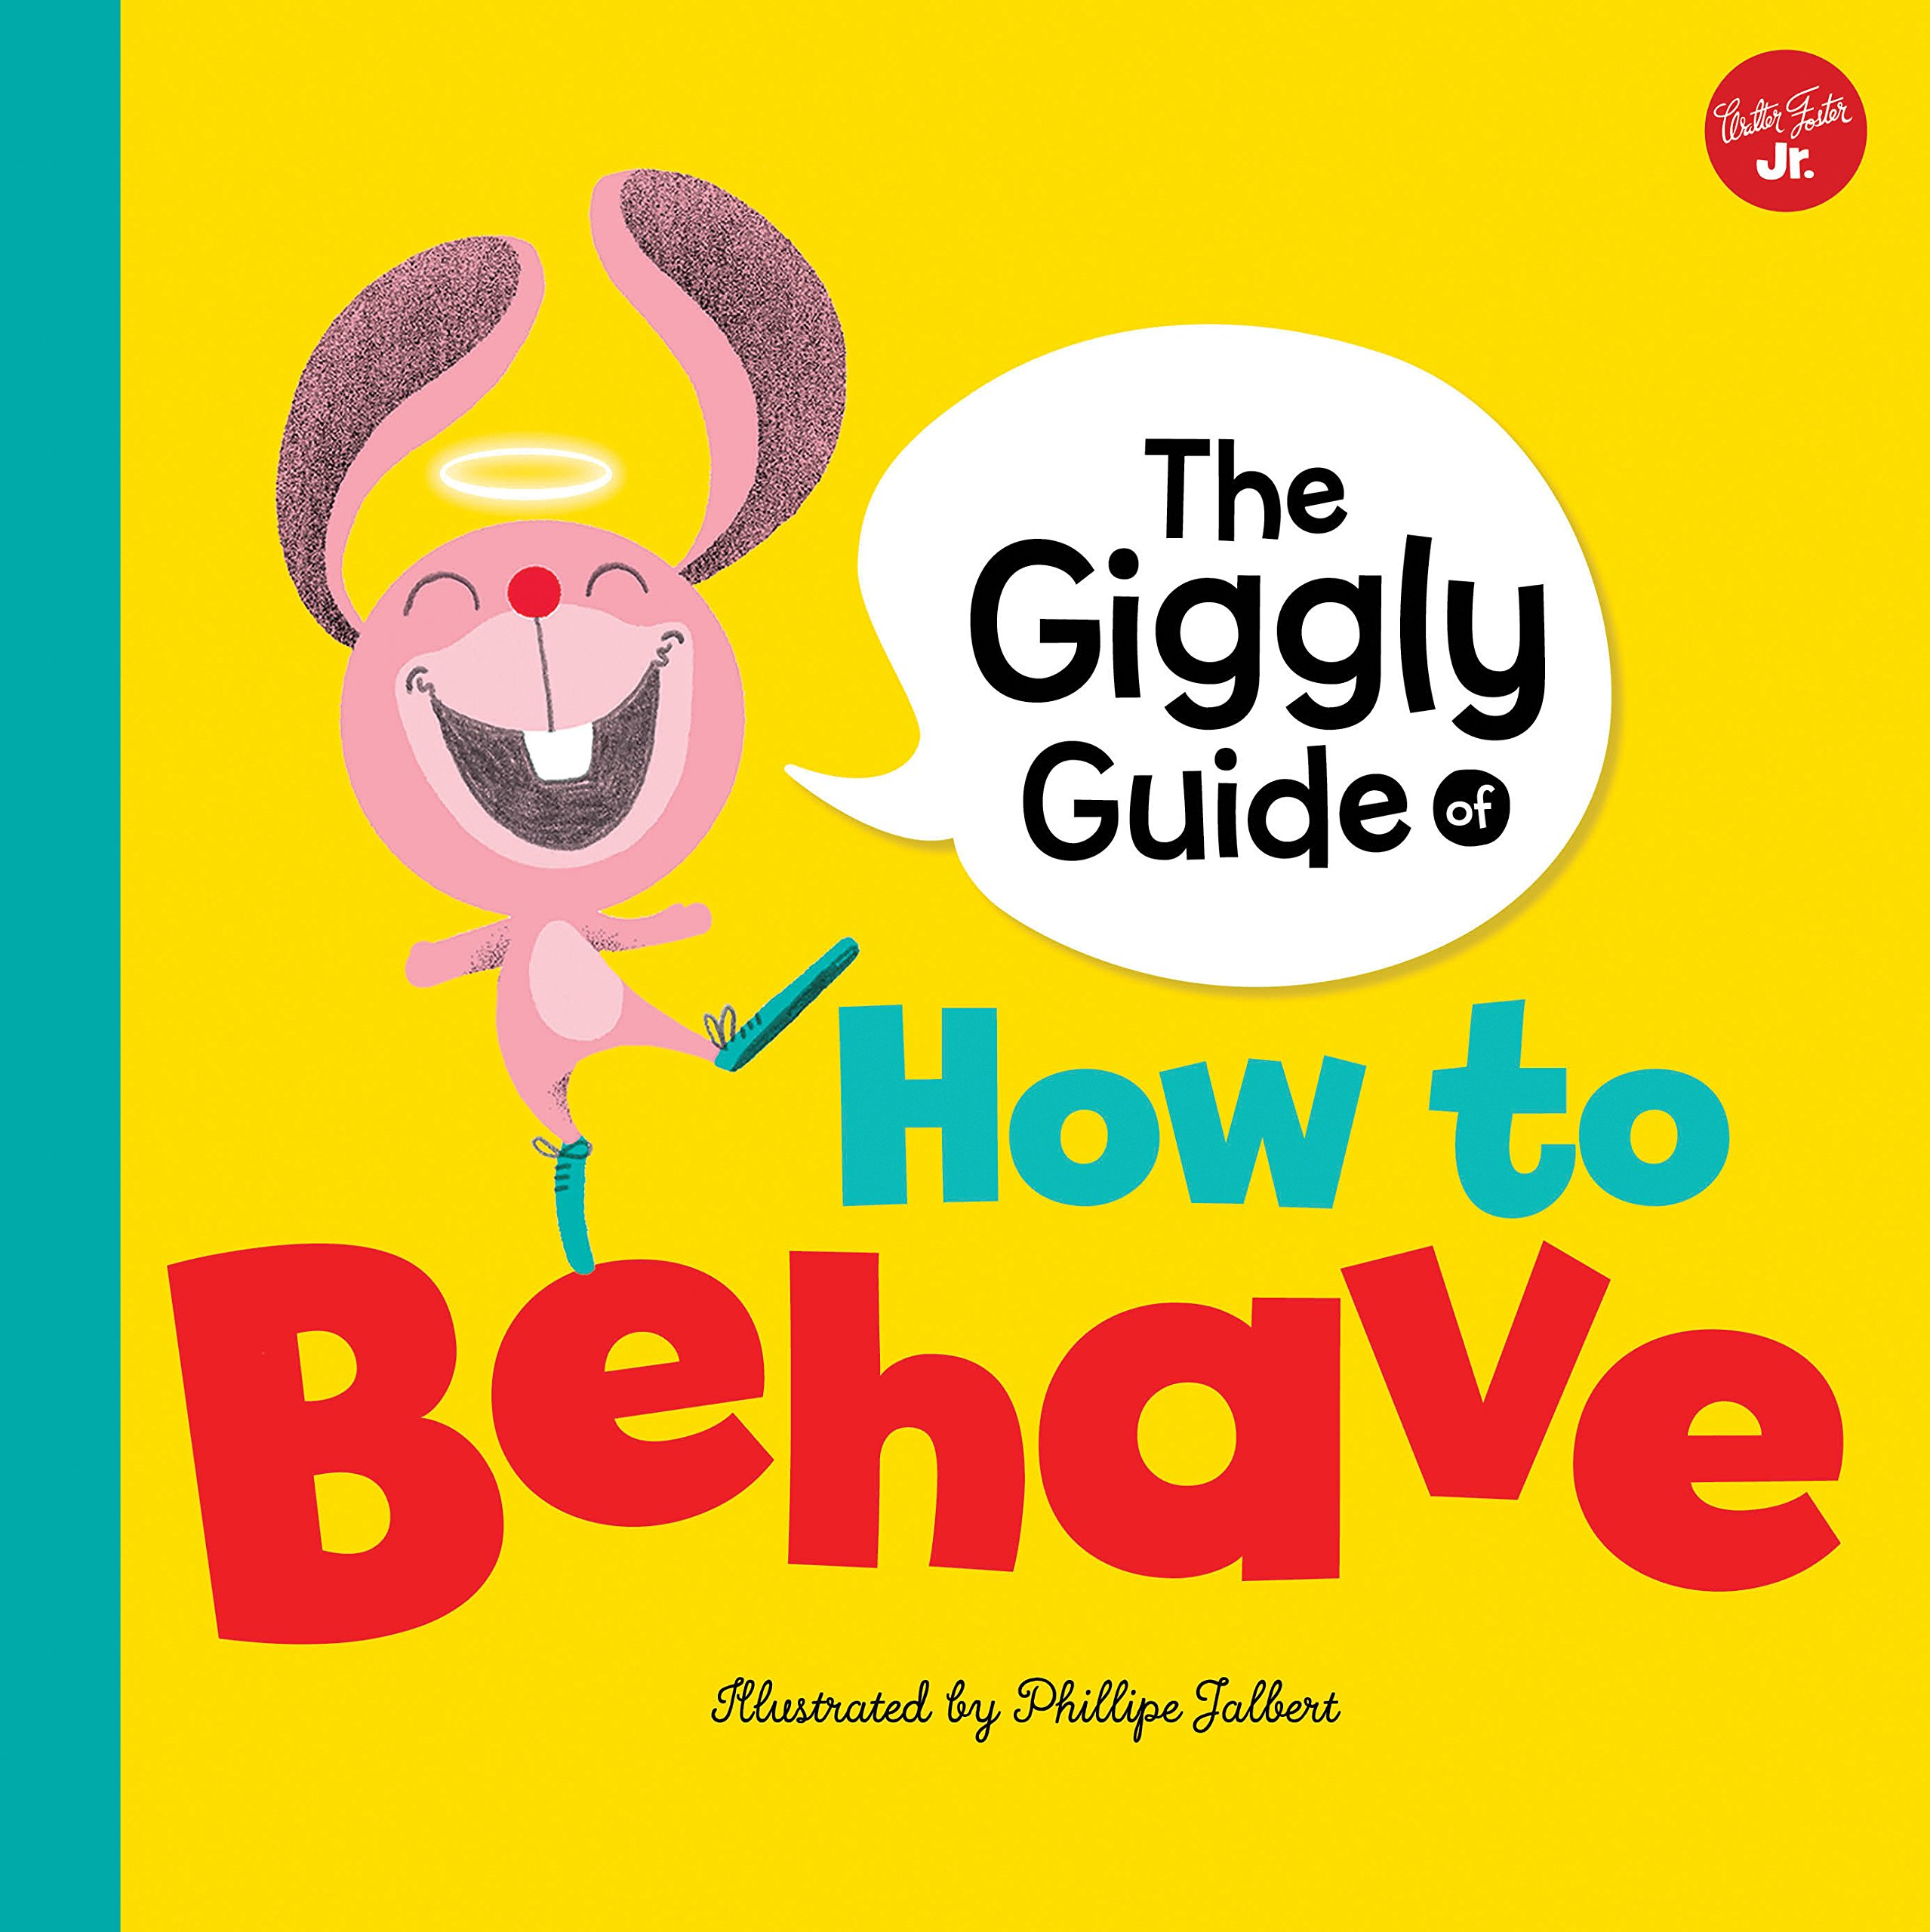 The Giggly Guide of How to Behave (Mind Your Manners)